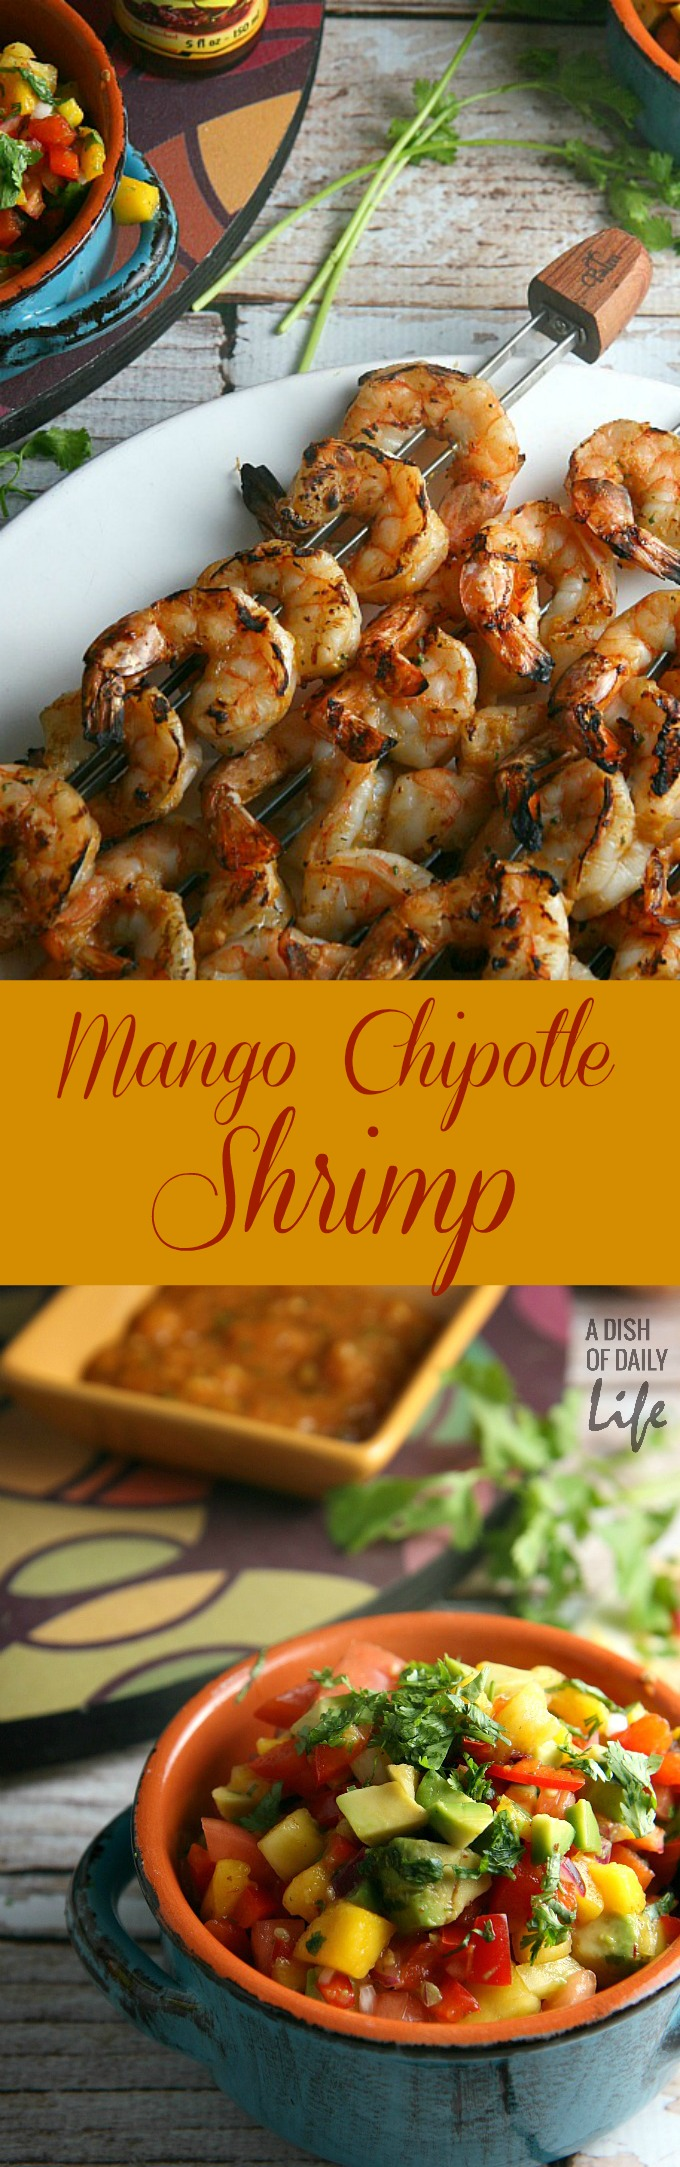 Mango Chipotle Shrimp Recipe...sweet mango paired with smoky chipotle makes for a barbeque sauce sensation! Perfect for dinner on the patio or a summer party, this grilling recipe takes just over 30 minutes from start to finish.